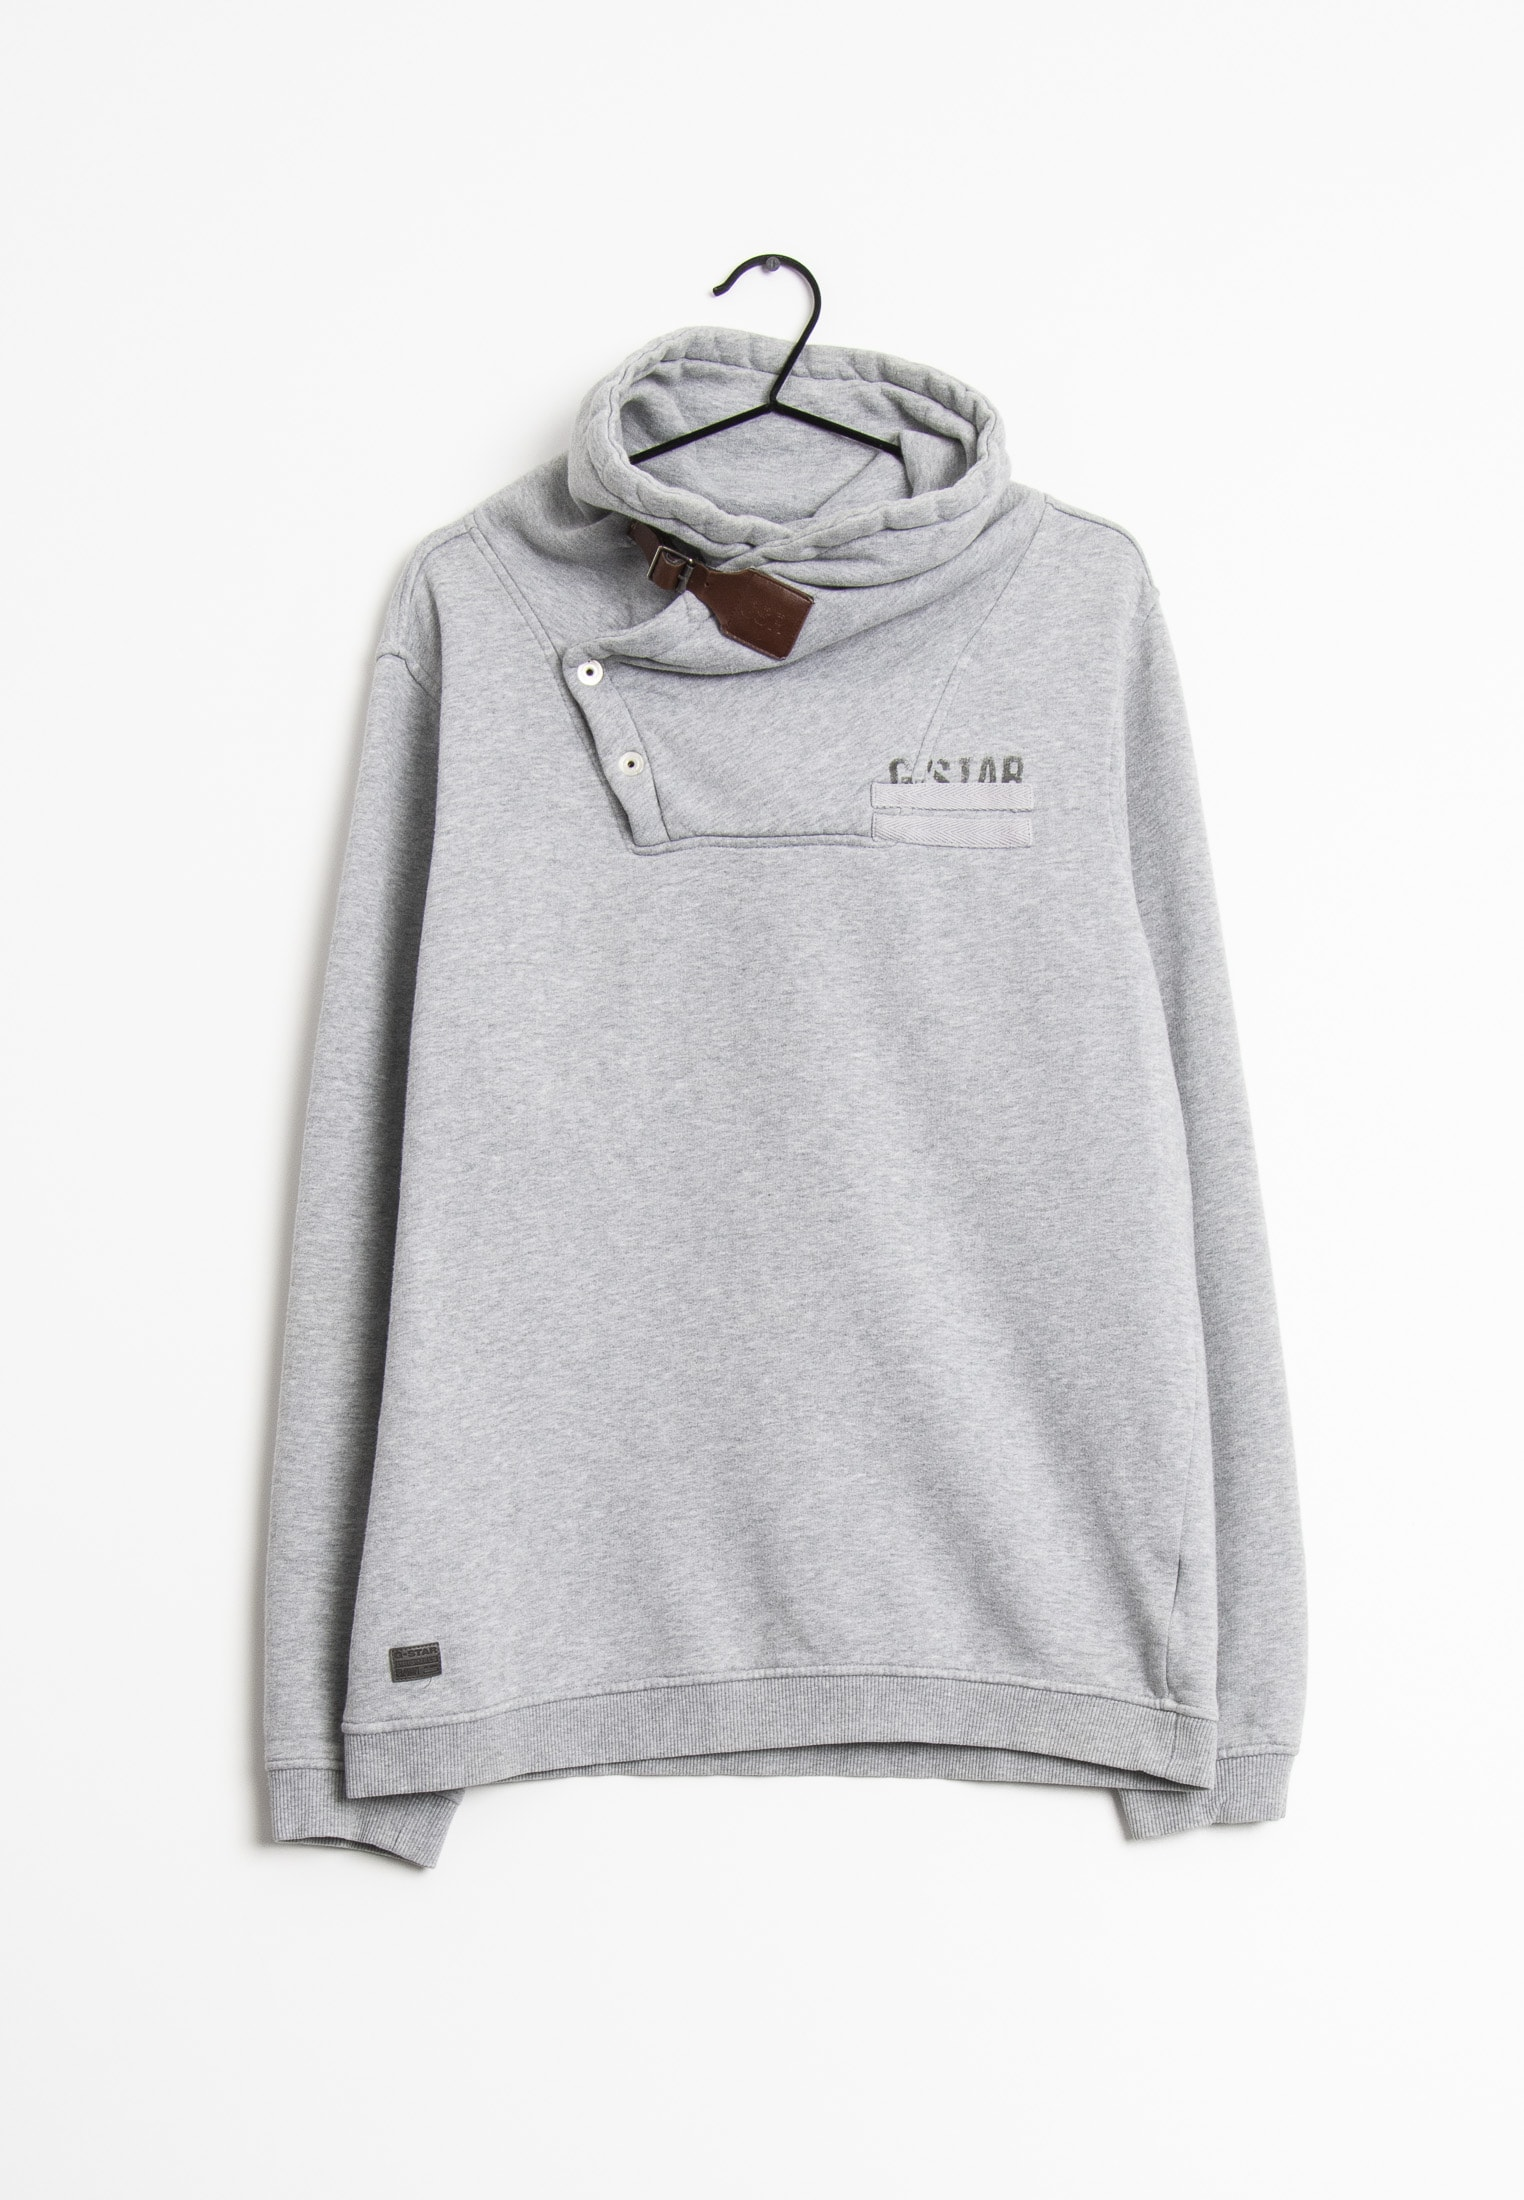 G-Star Sweat / Fleece Grau Gr.L